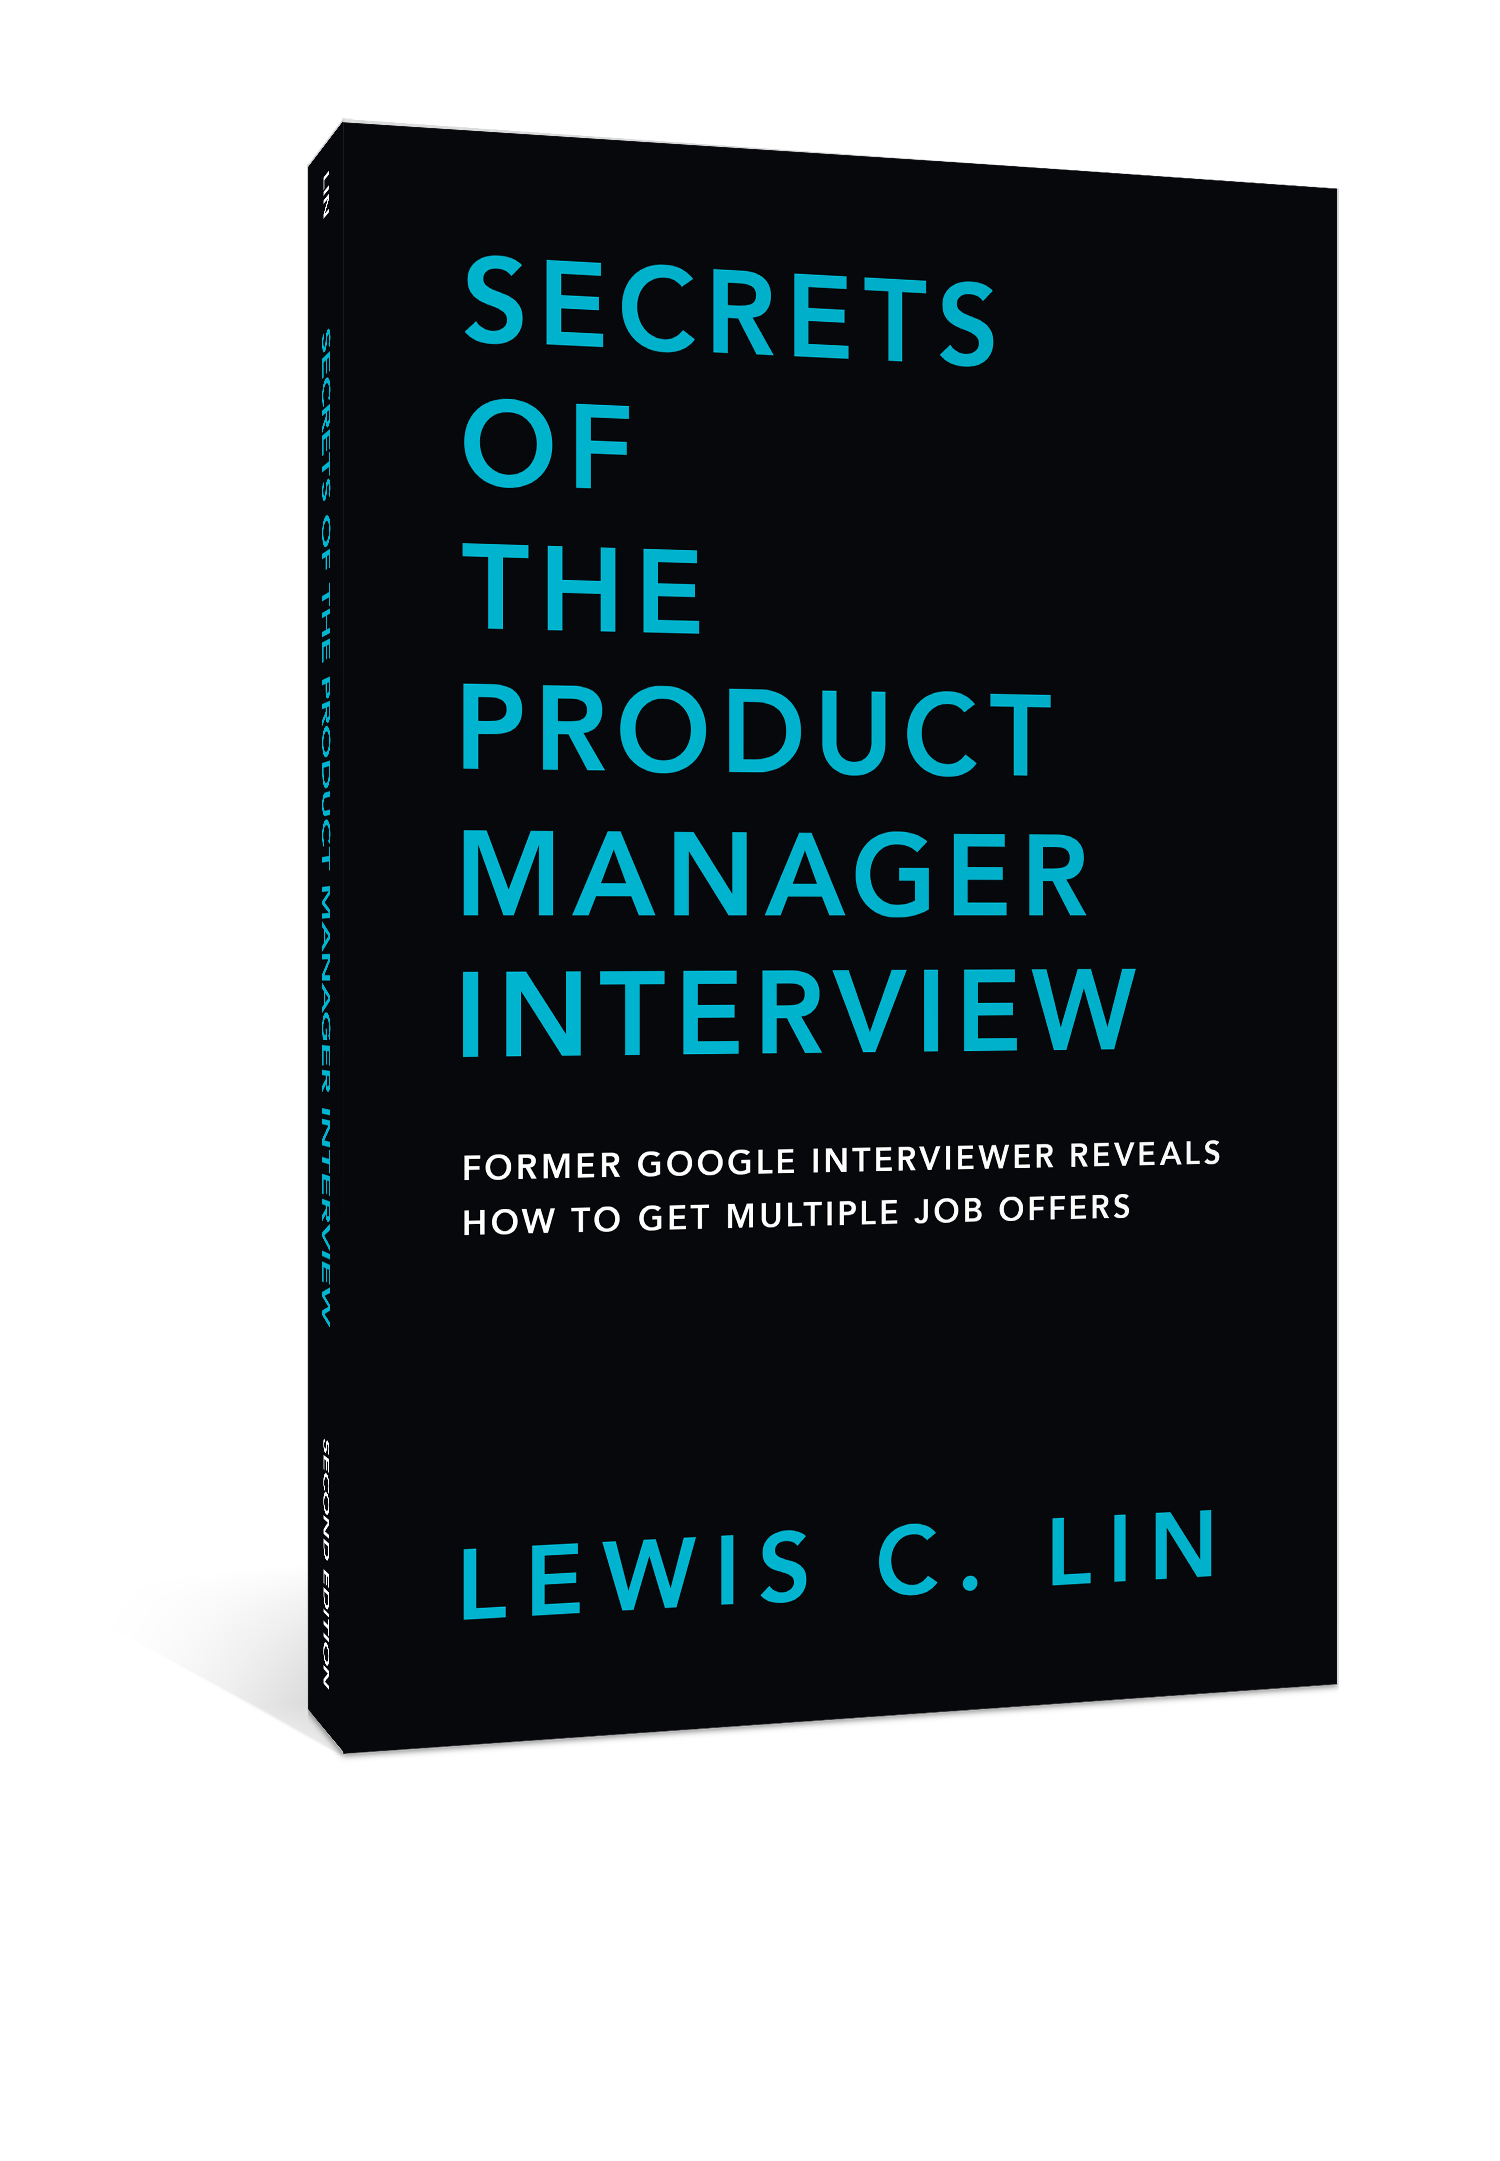 secrets-of-the-product-manager-interview-book-lewis-c-lin